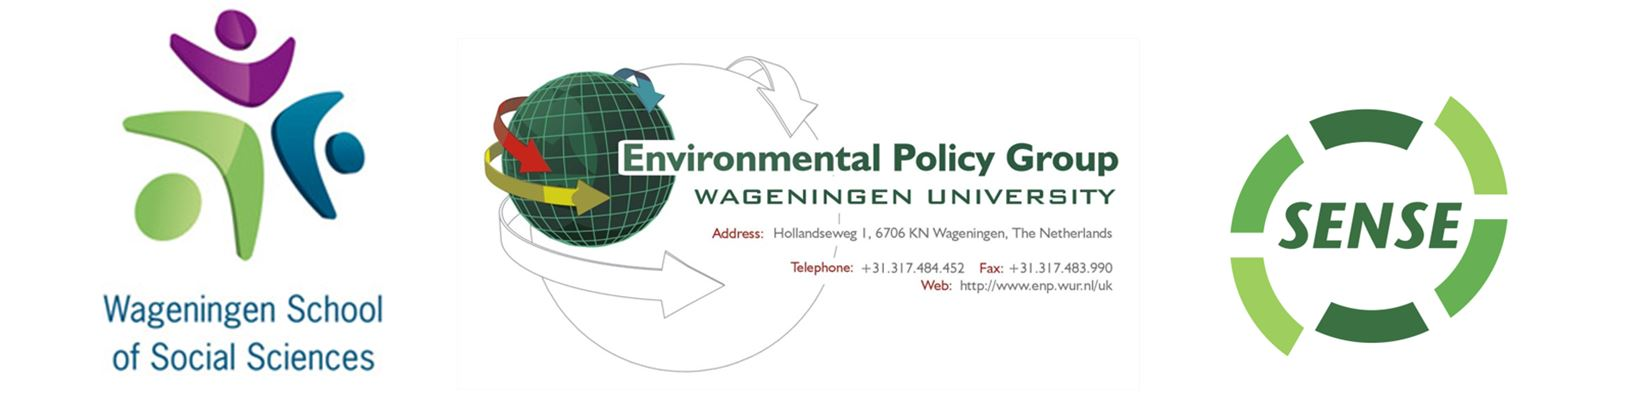 Course organized by the Environmental Policy group (ENP) in collaboration with Wageningen School of Social Sciences (WASS) and SENSE Research School for Socio-Economic and Natural Sciences of the Environment, Wageningen University